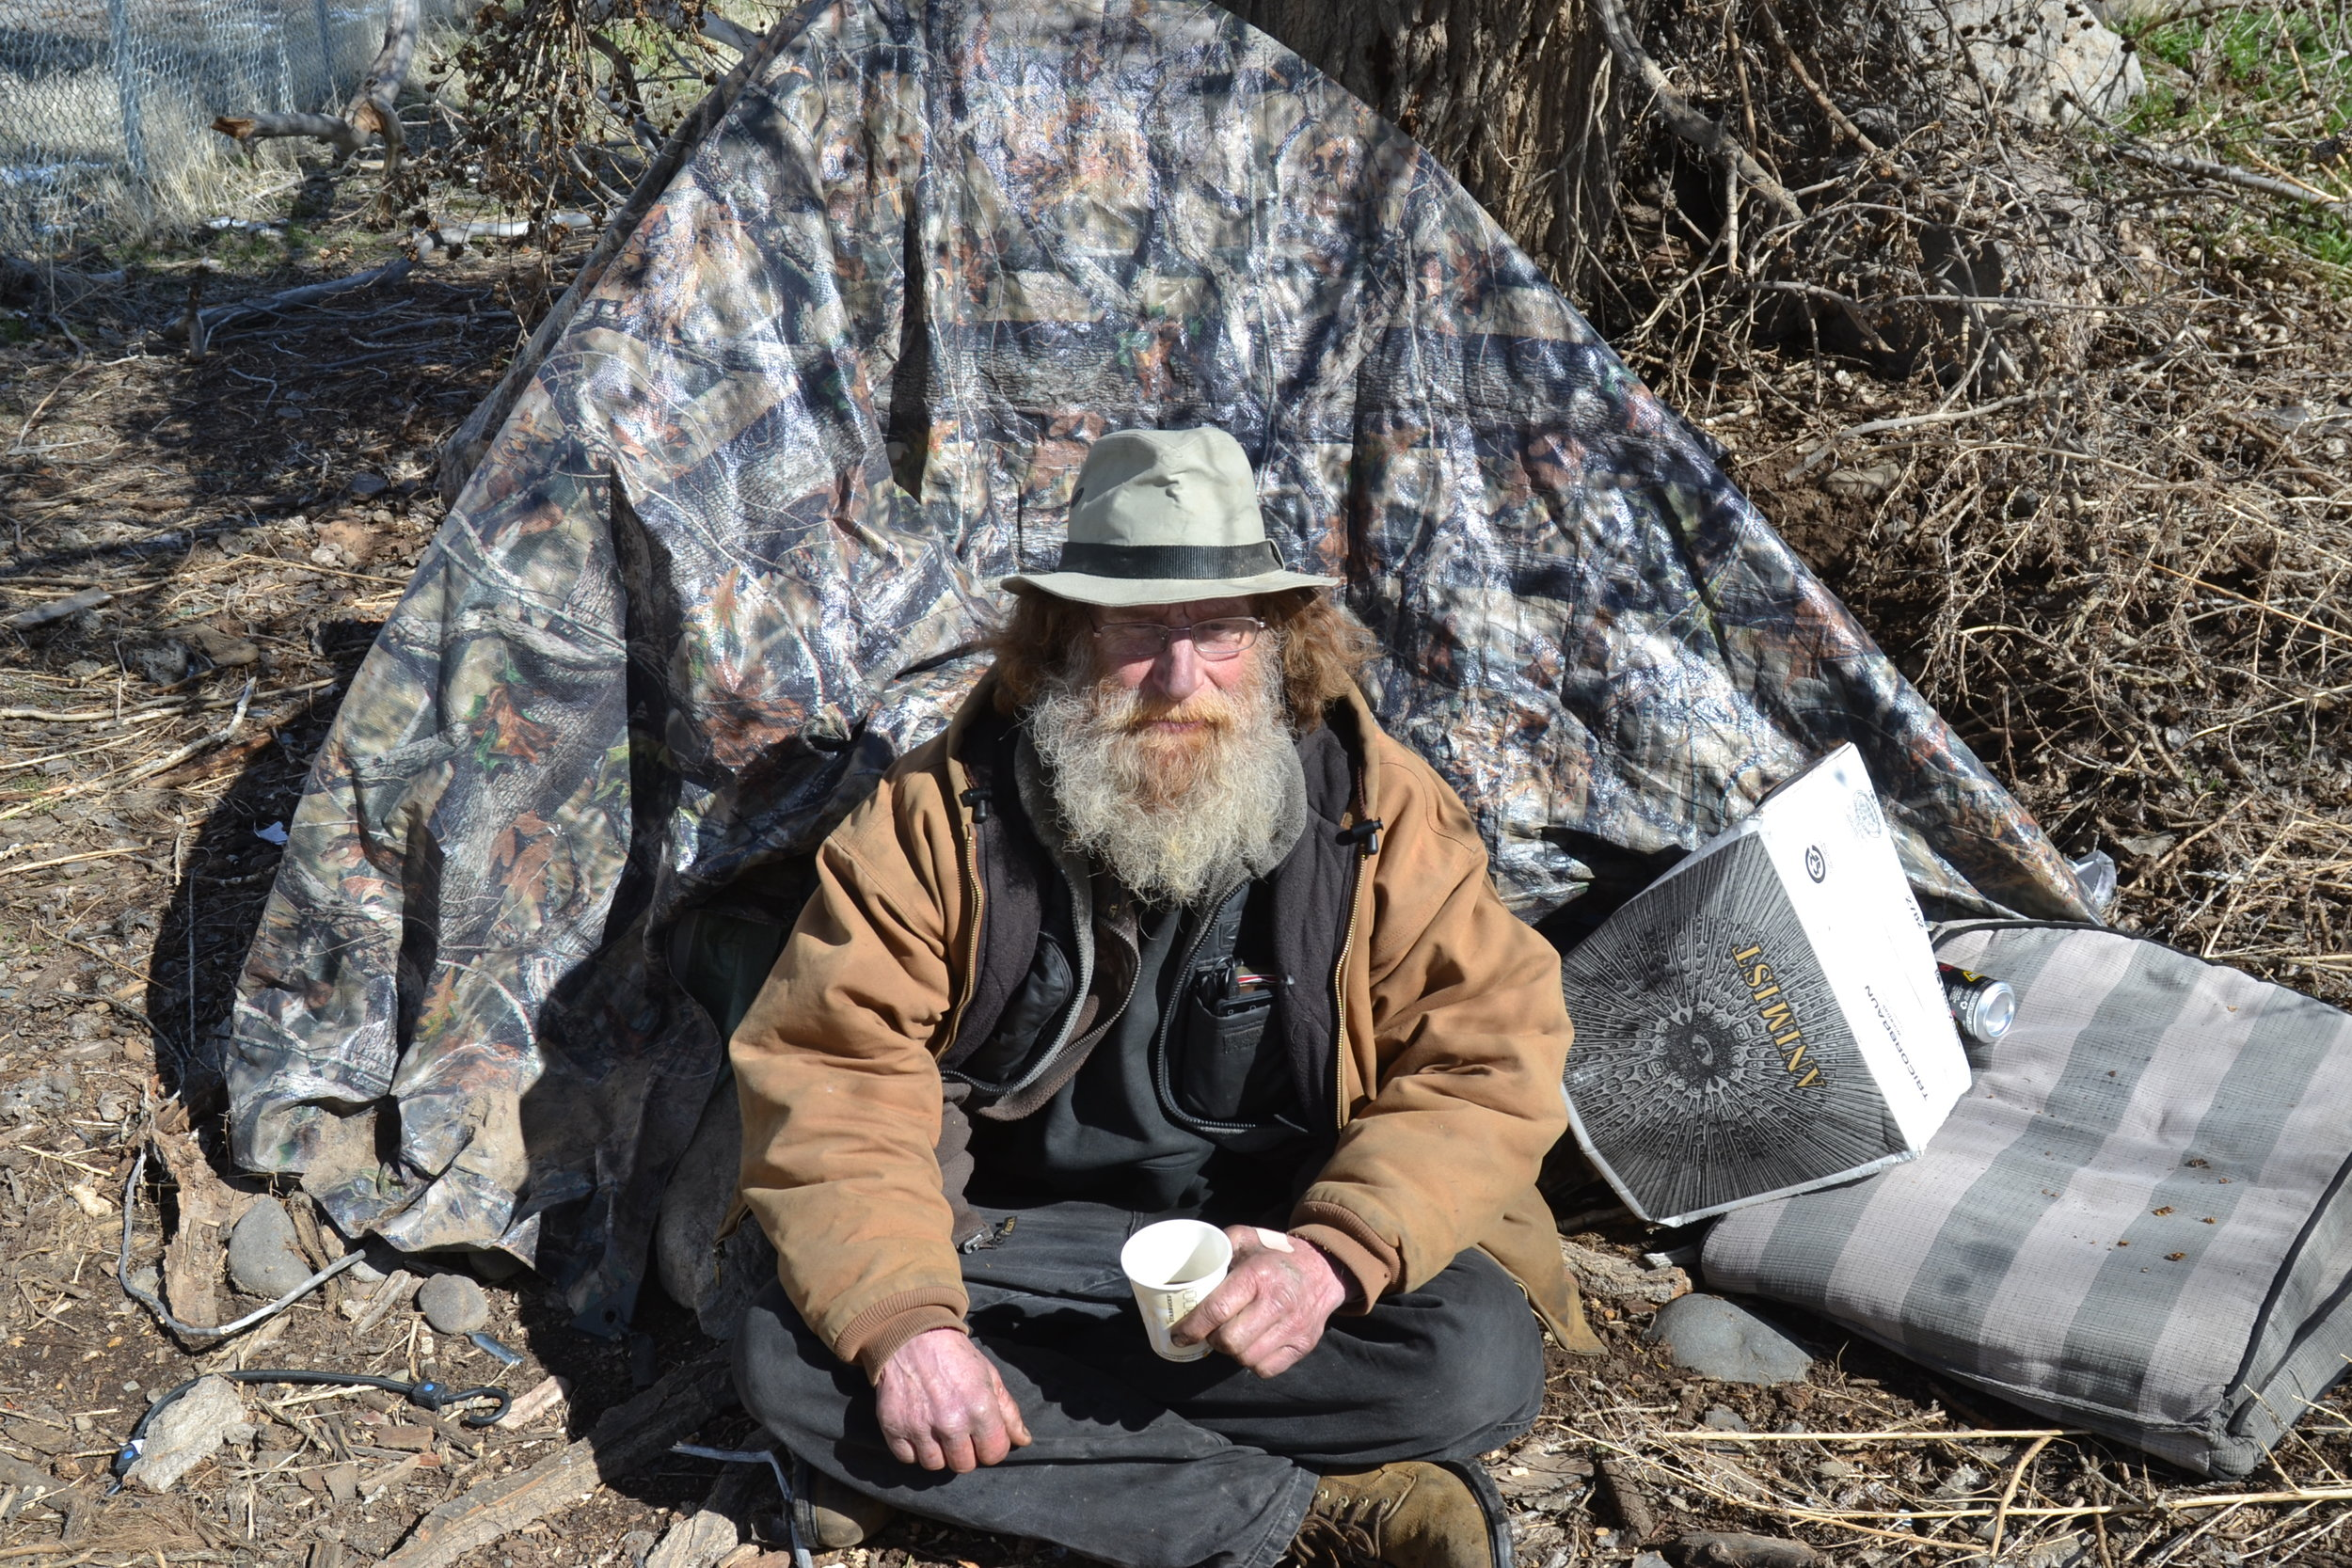 Kenny, who says he's from New Mexico, braved this harsh winter by the Truckee river in his tent. Photo by Jacob Jacoby for Our Town Reno